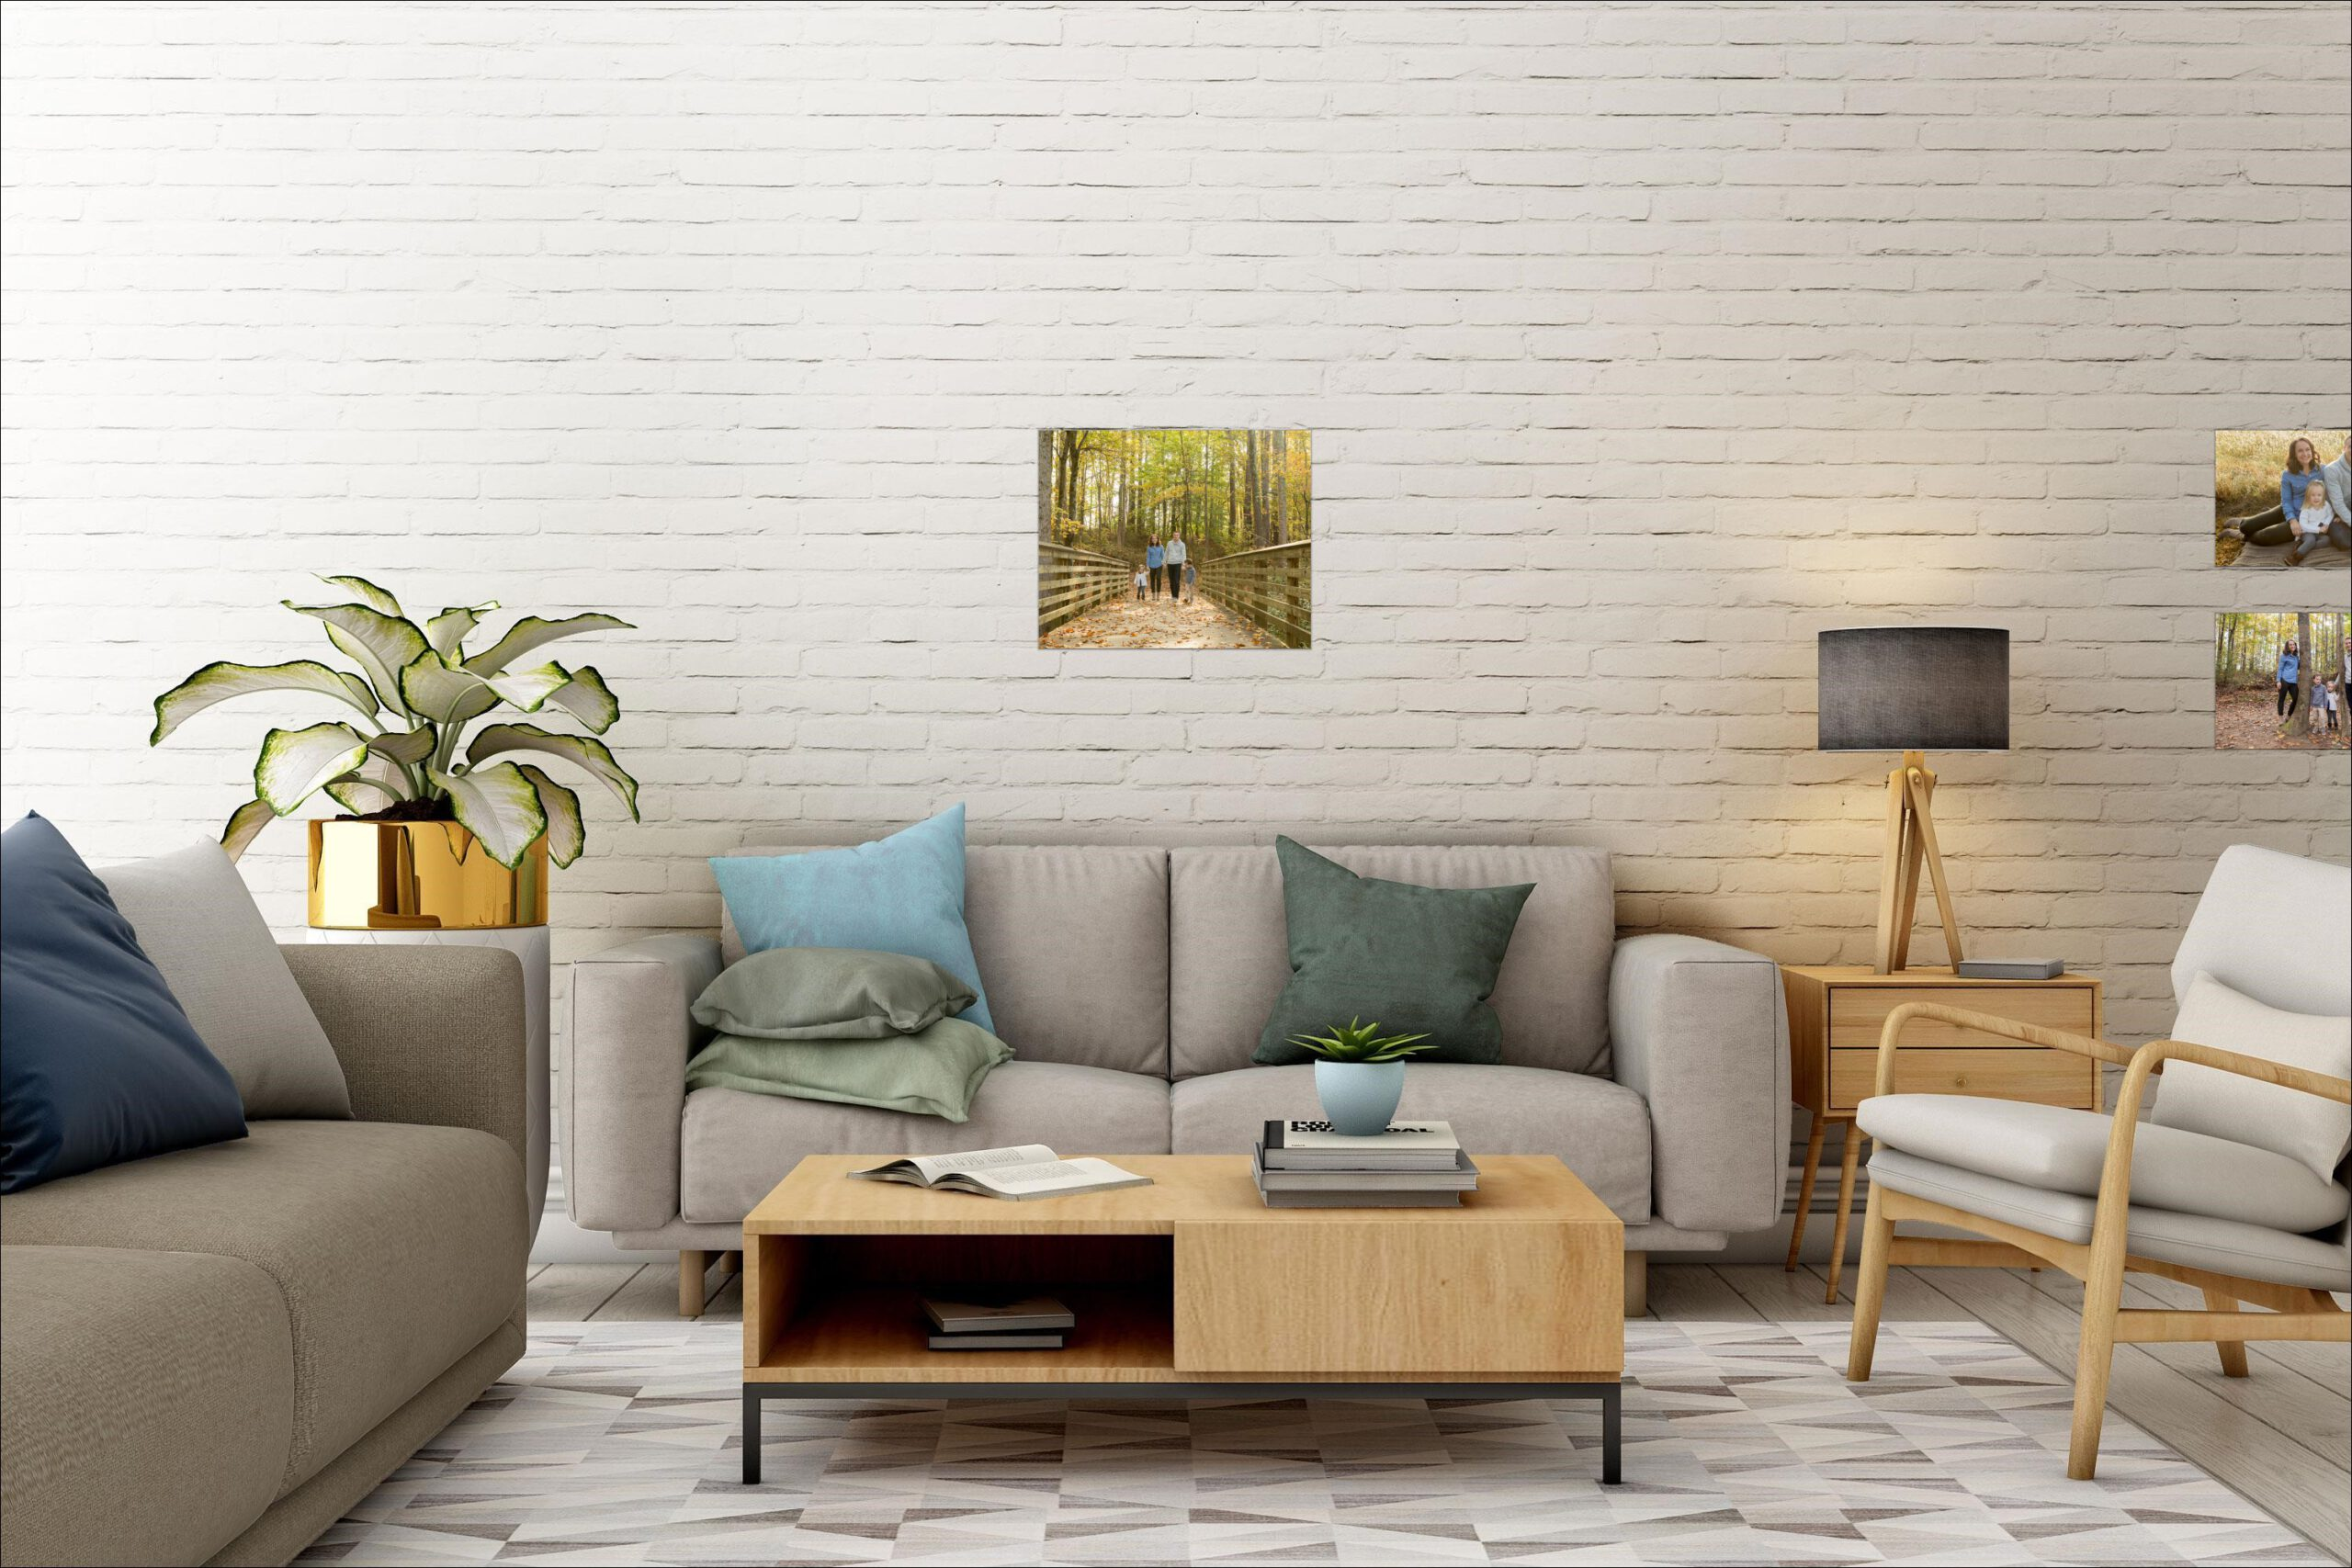 4 Easy Steps to Decorate With Photographs 6